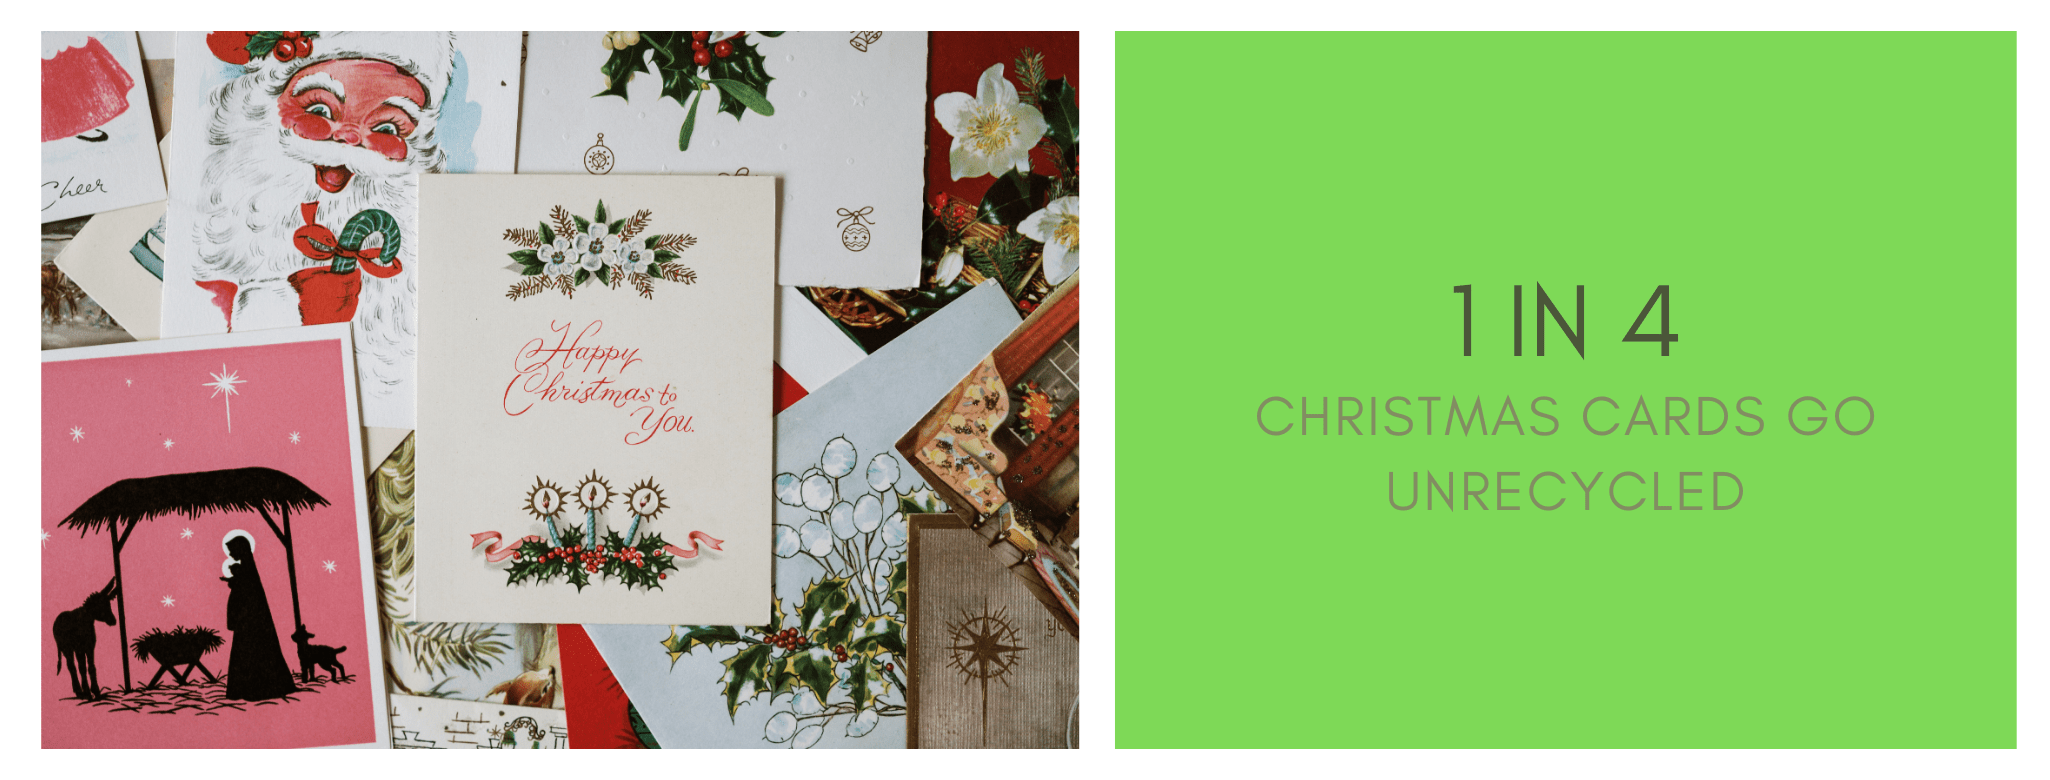 1 in 4 Christmas cards go unrecycled